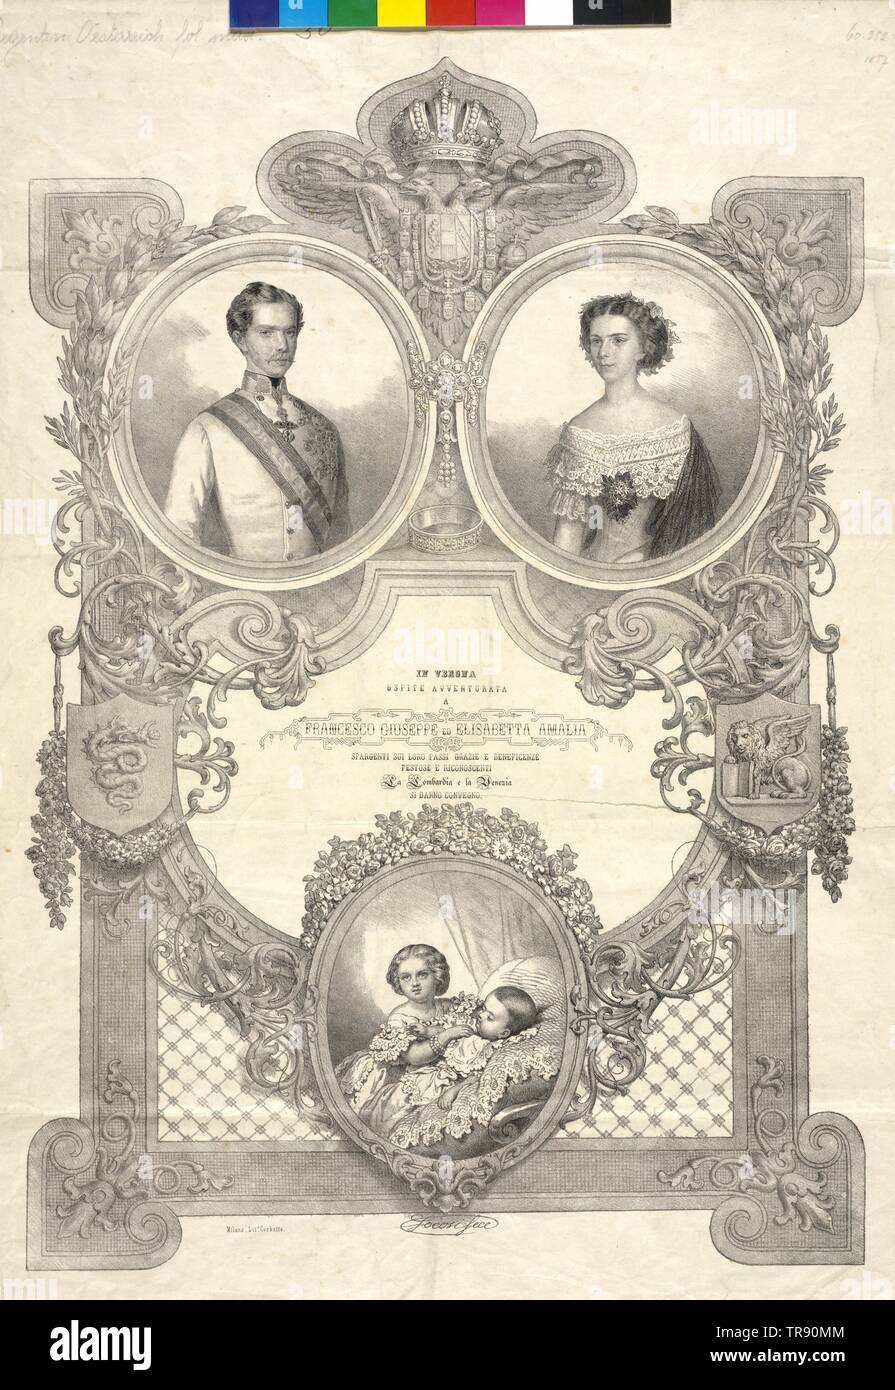 Franz Joseph I, Emperor of Austria, tableau in the ocassion of the visiting tour through Lombardy Veneto 1856 / 57: Franz Joseph and Elisabeth with the children Sophie and Gisela, lithograph by Alessandro Focosi, Additional-Rights-Clearance-Info-Not-Available - Stock Image